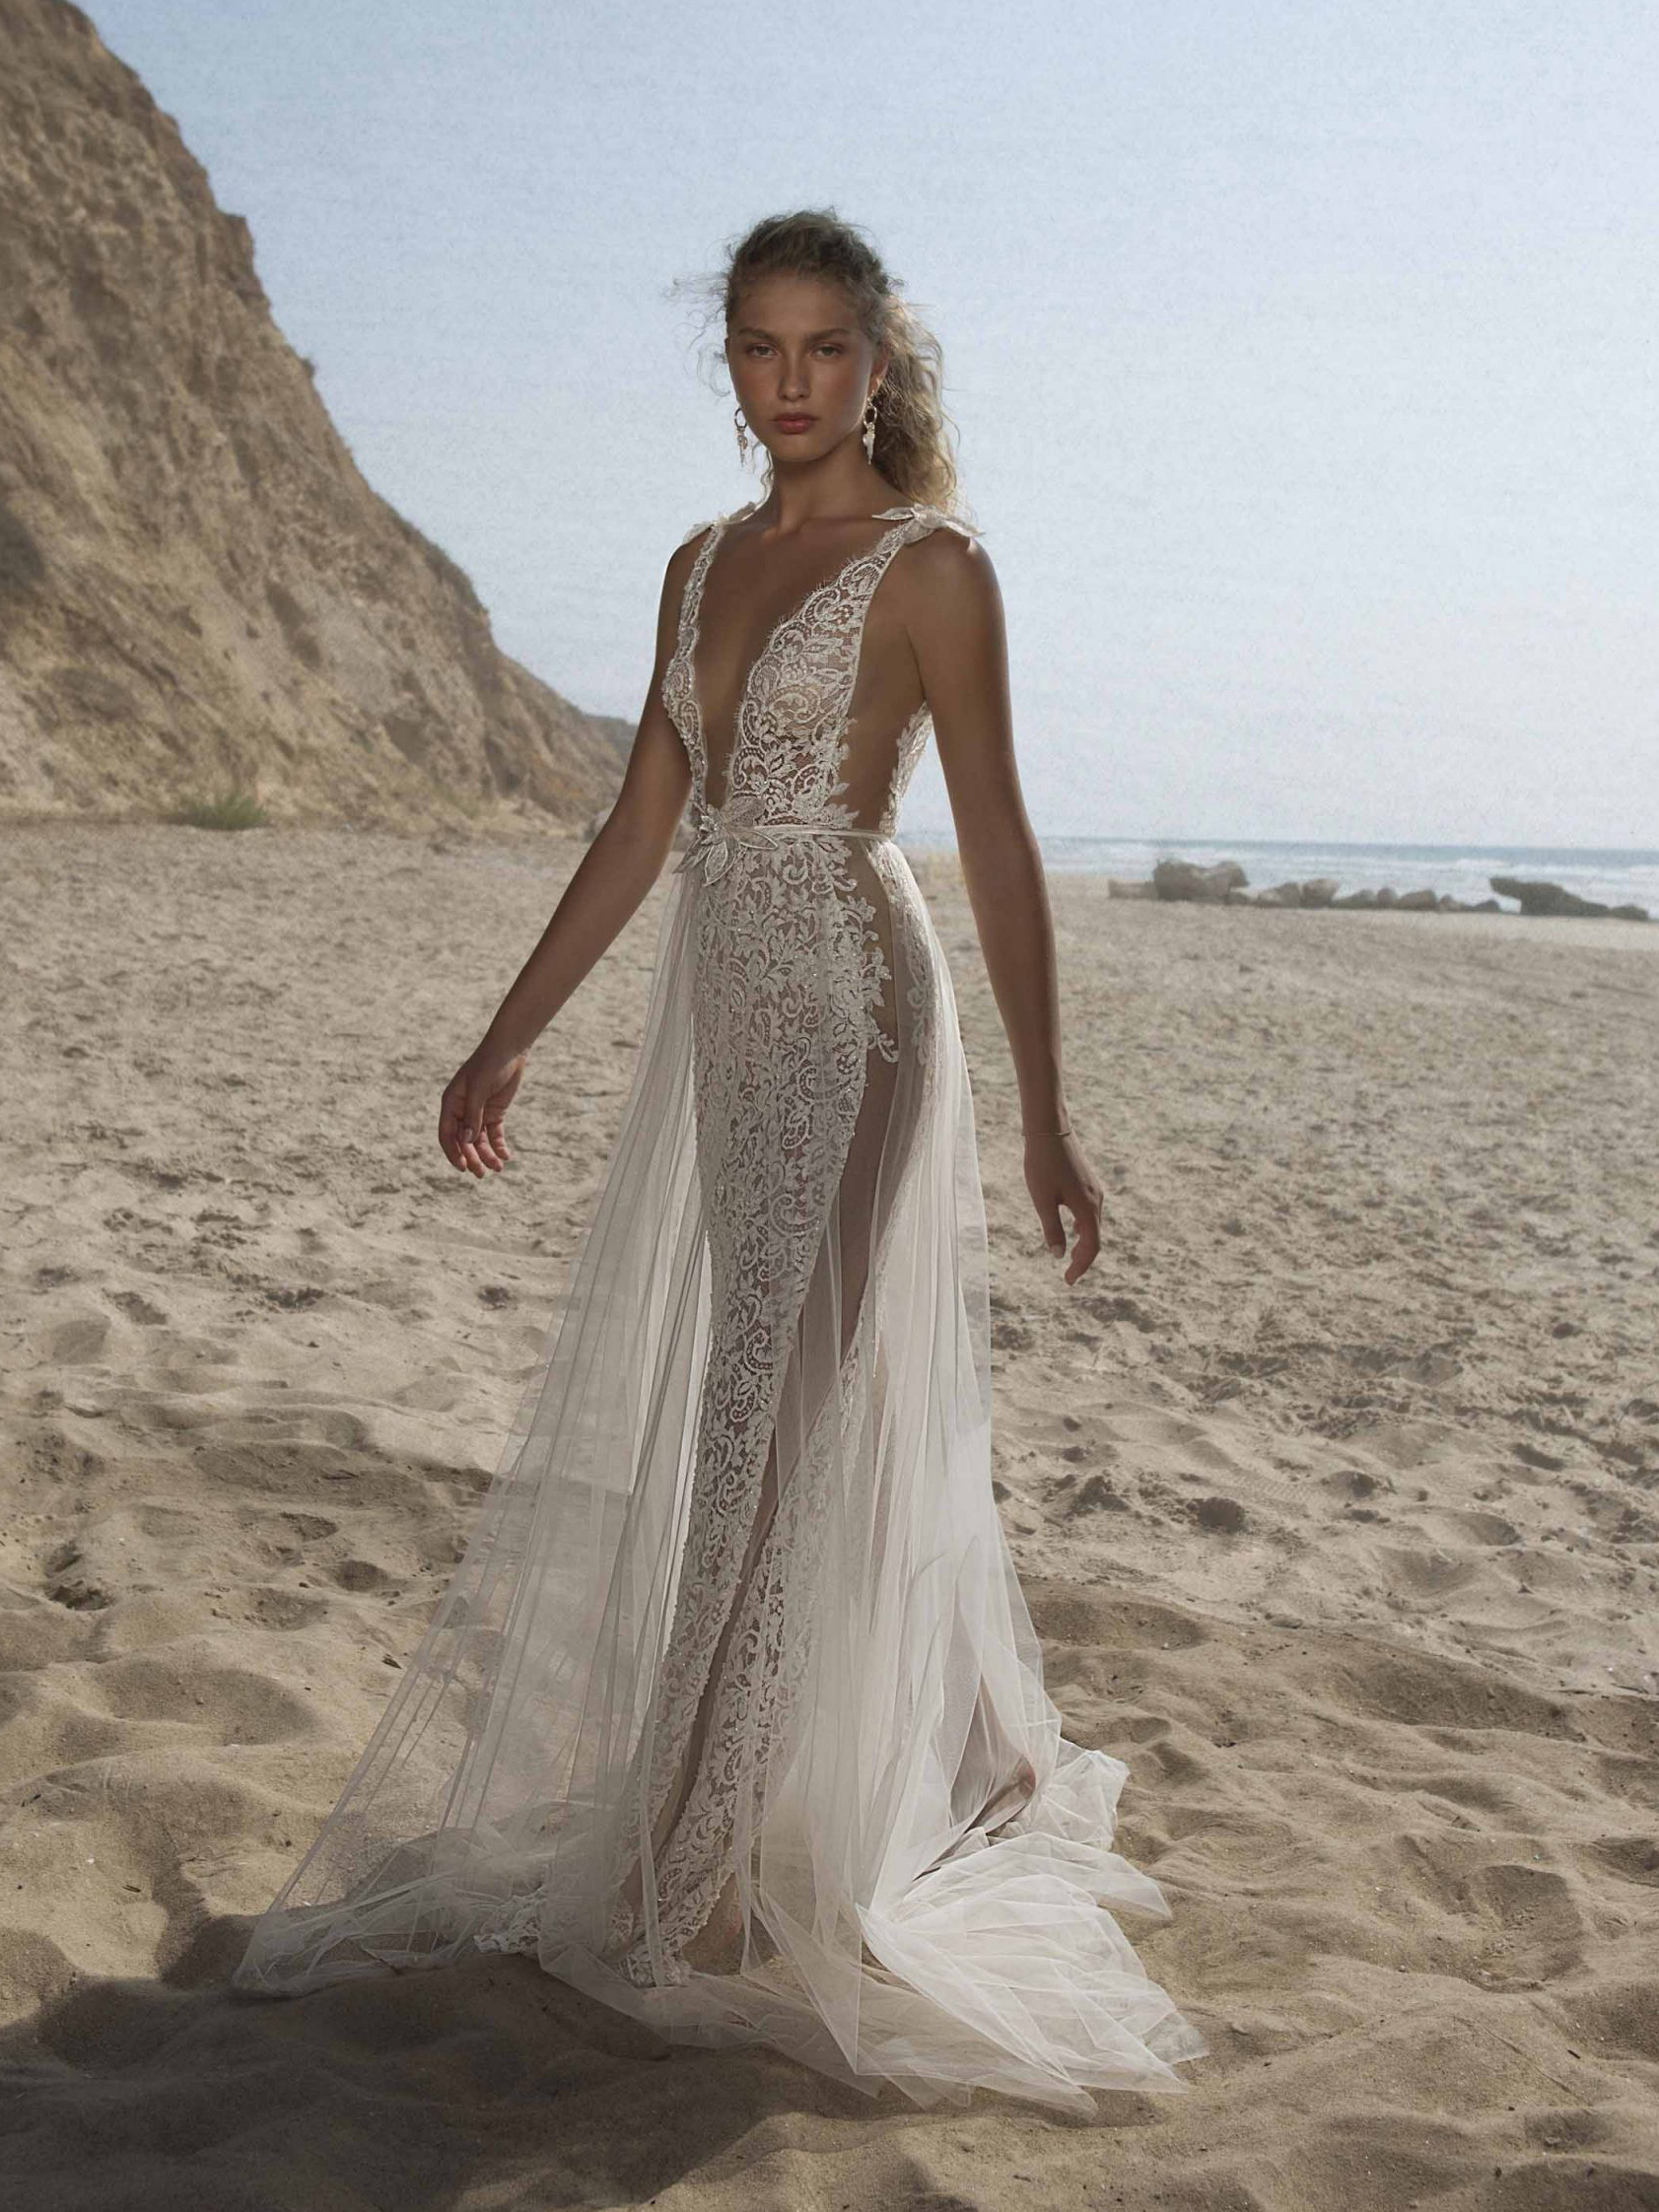 21-HEATHER Bridal Dress Inspirated By Berta Muse 2021 Vista Mare Collection